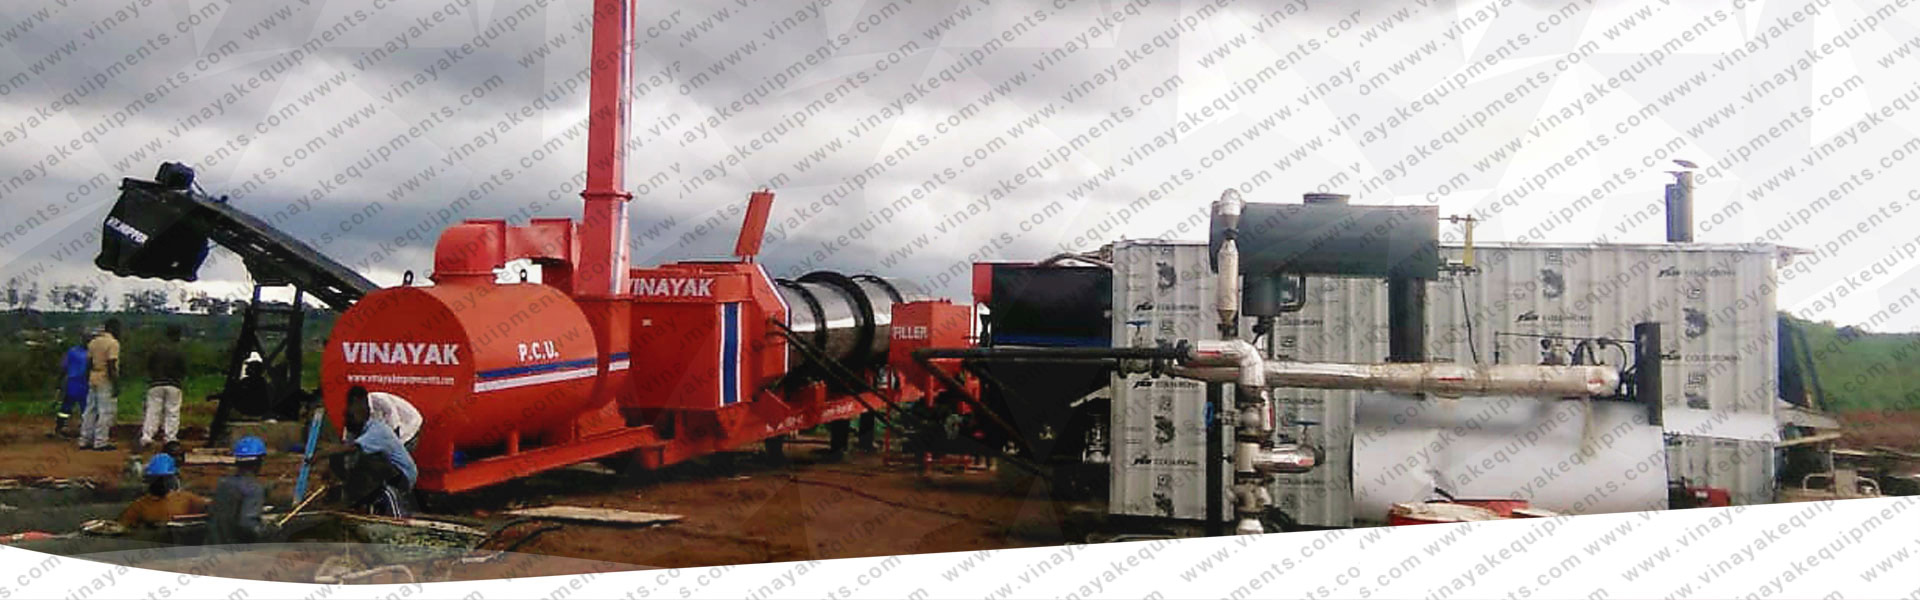 Portable asphalt plant manufacturers, in india, south africa, uae, sri lanka, germany